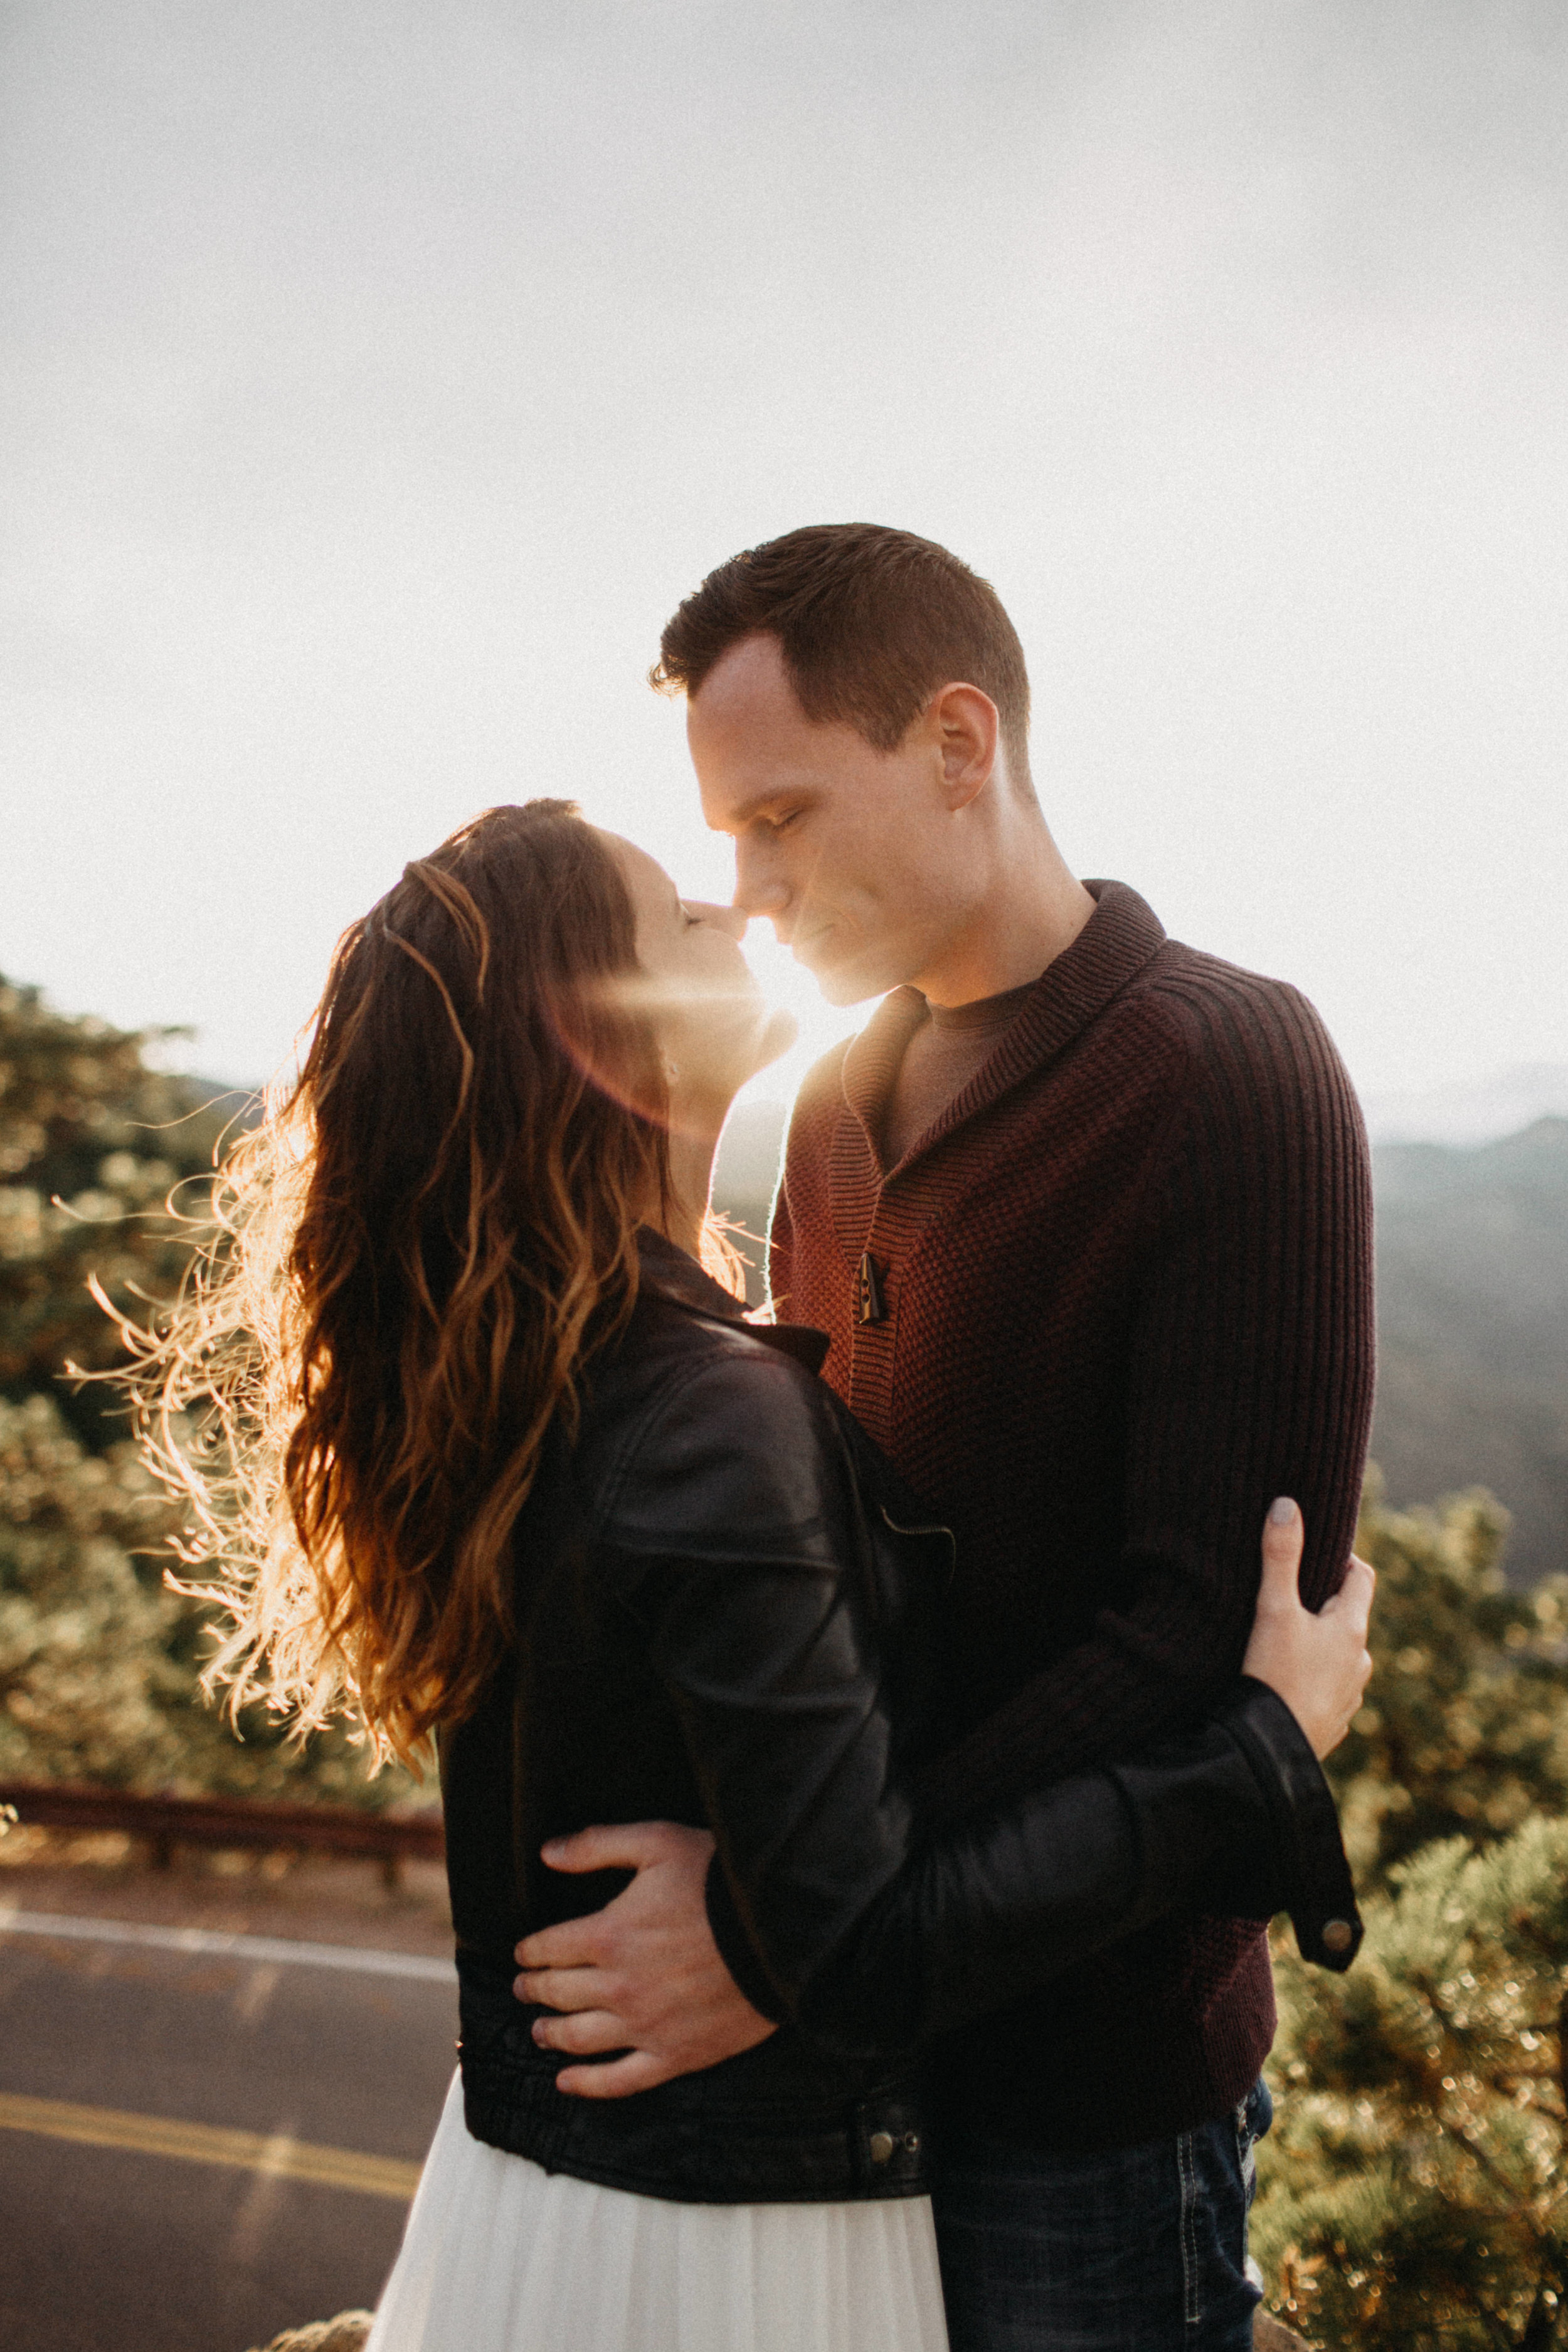 Lookout Mountain Engagement Photographers in Colorado